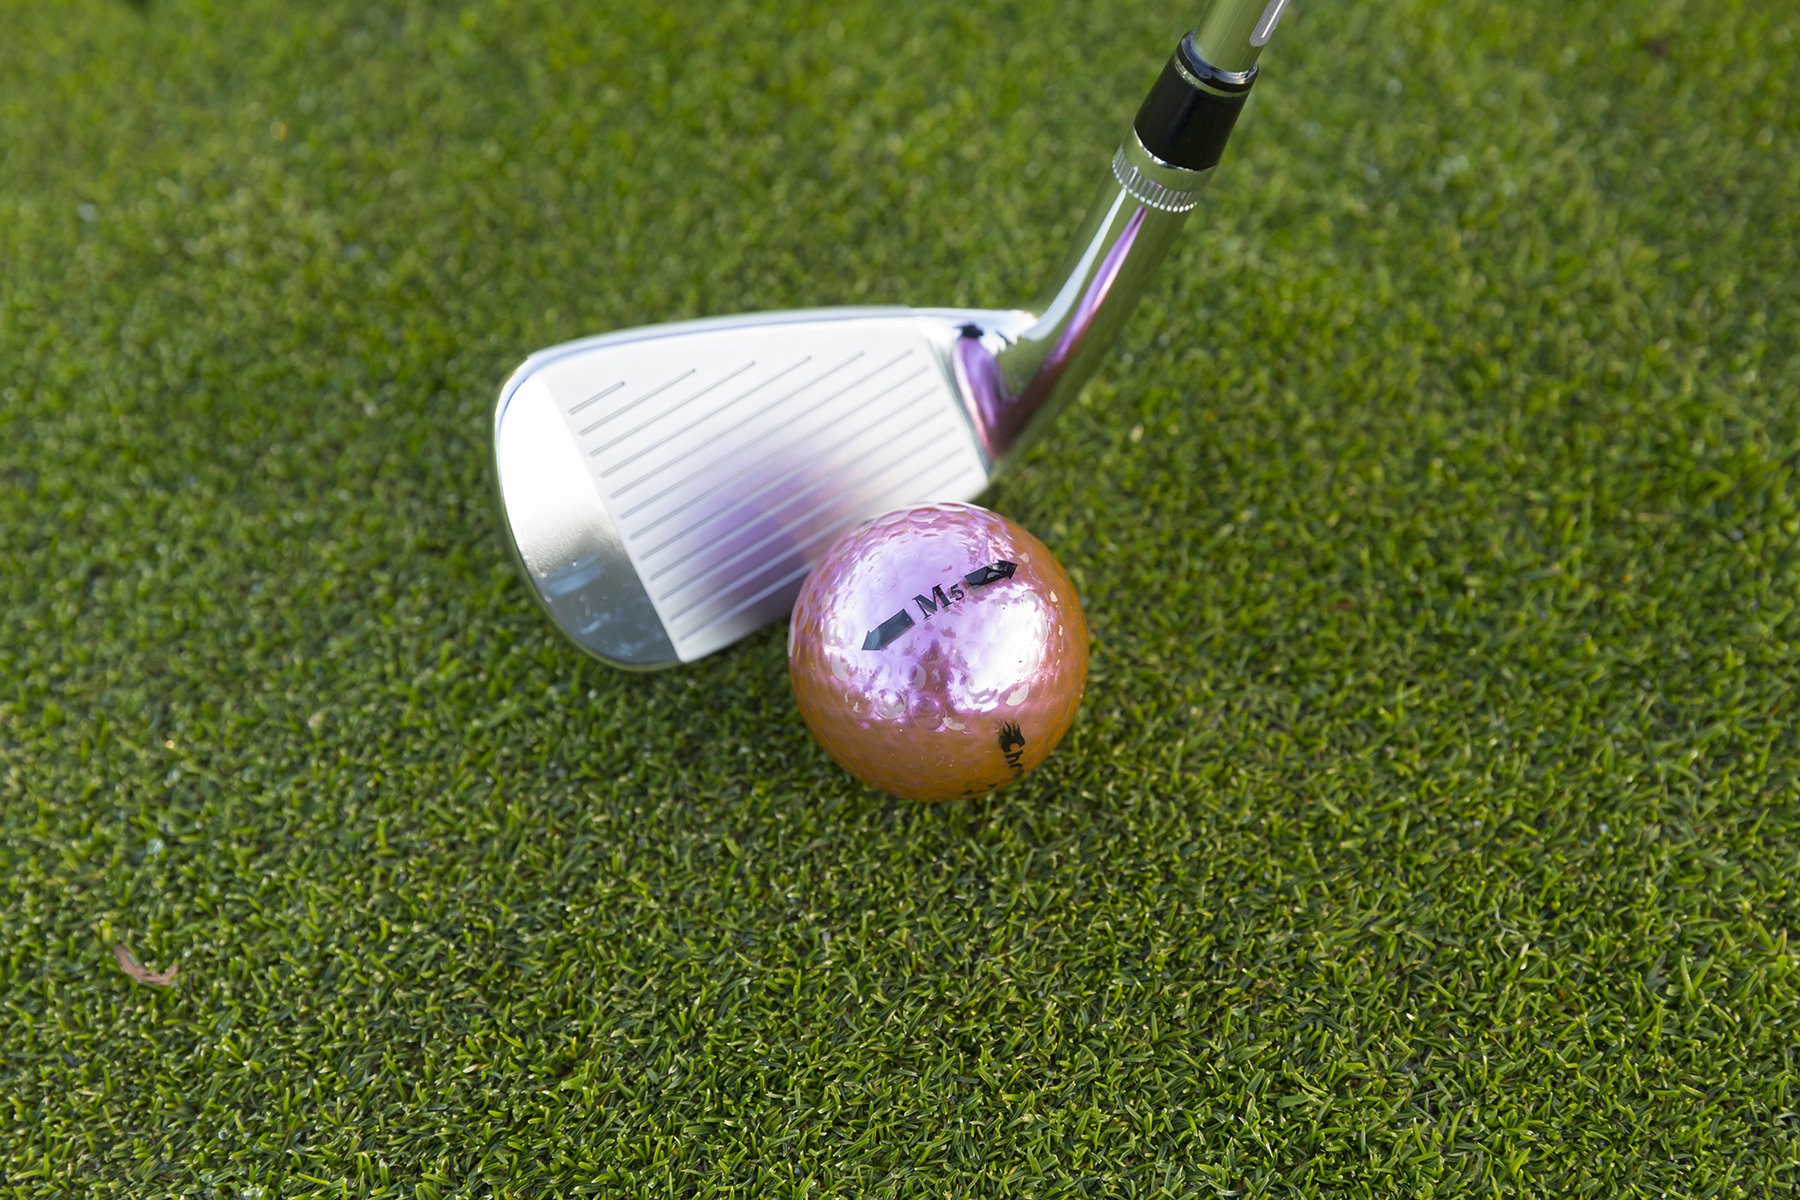 Chromax purple golf ball M5 with wedge